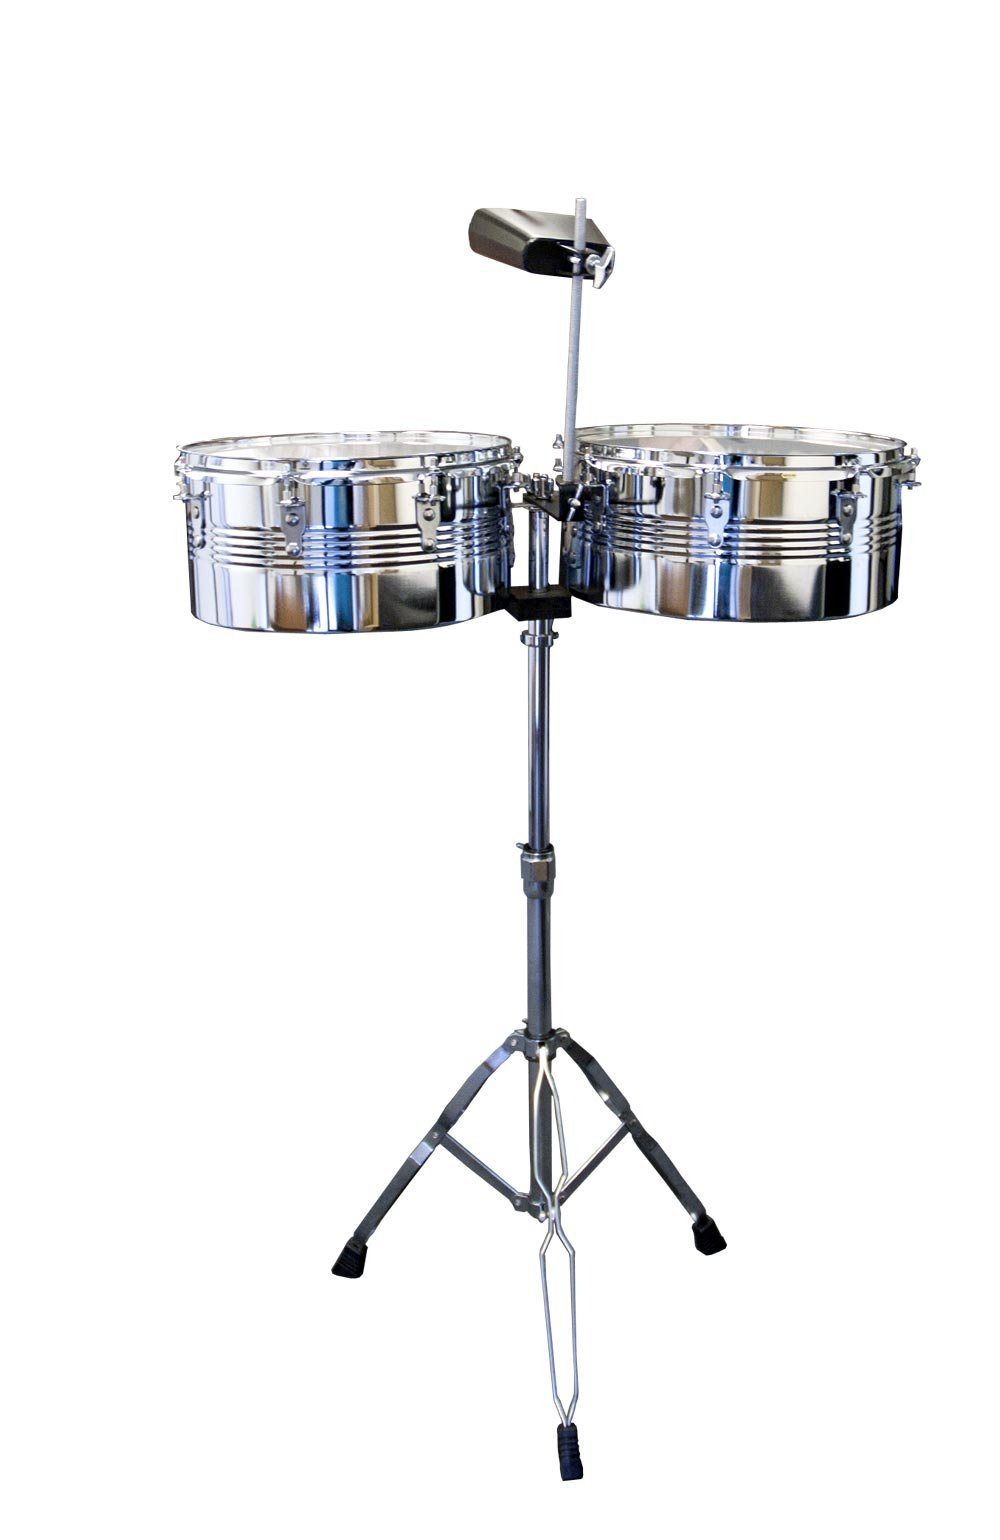 Suzuki Musical Instrument Corporation TS-2 Timbale Drum Set with Stand, Cowbell and Sticks by Suzuki Music